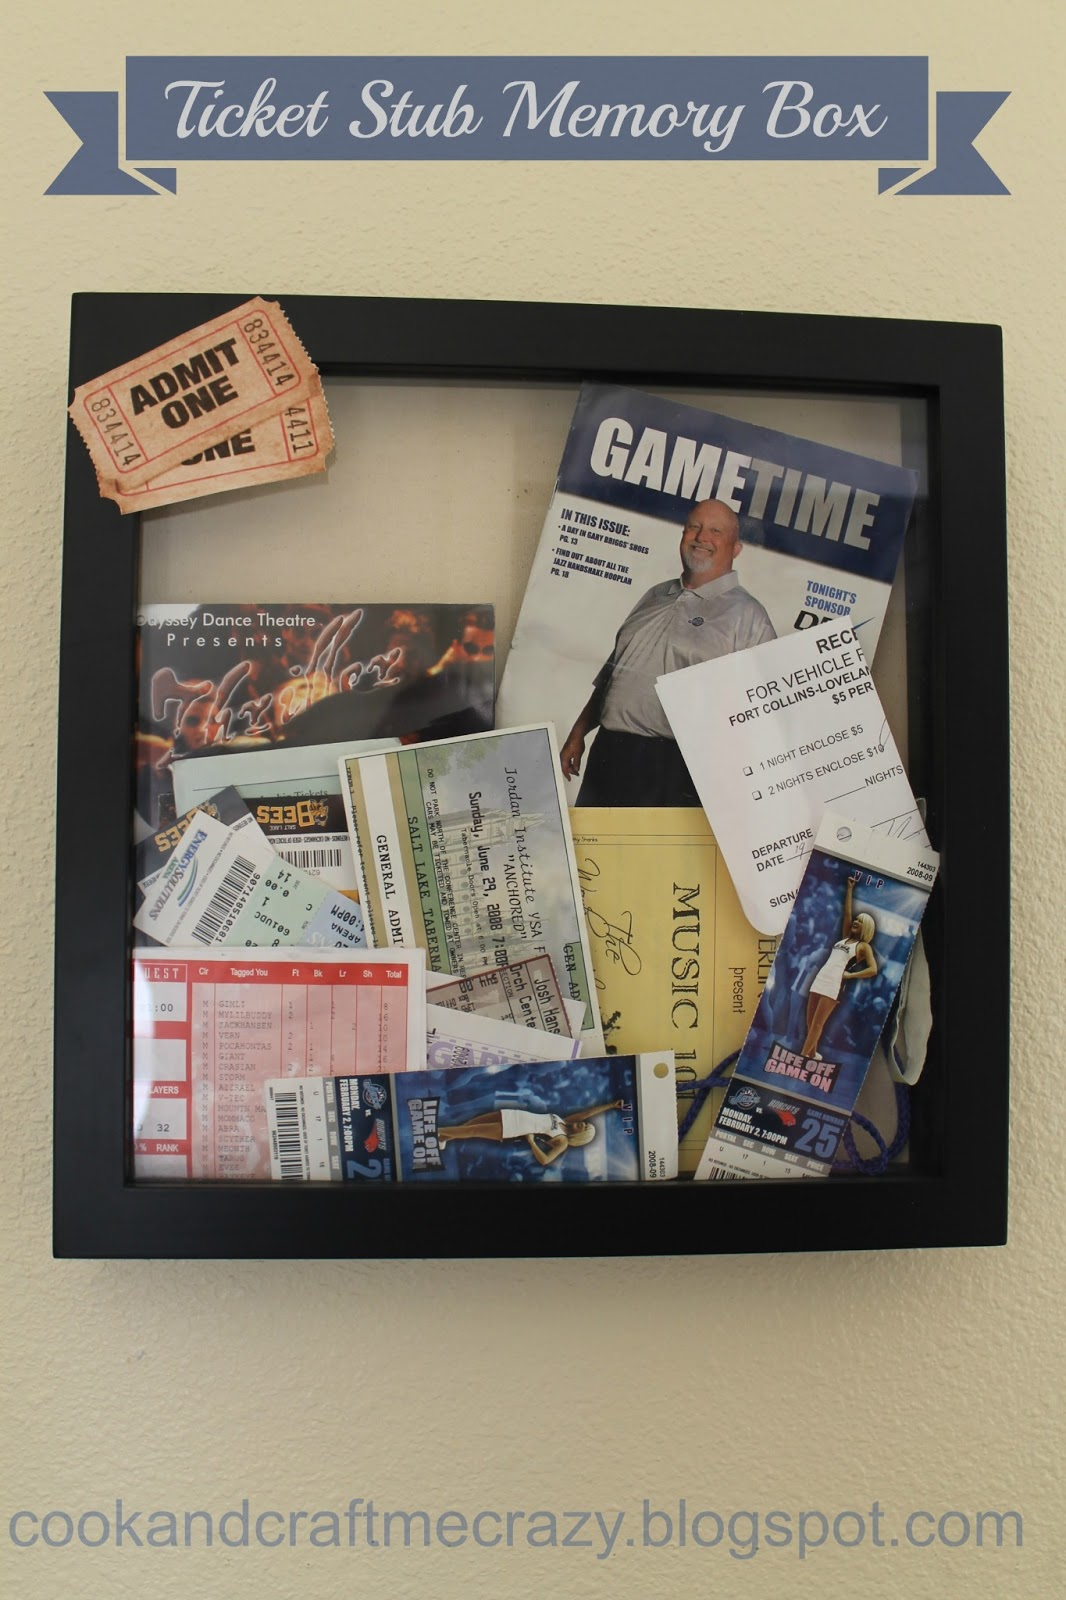 Cook And Craft Me Crazy Ticket Stub Memory Box